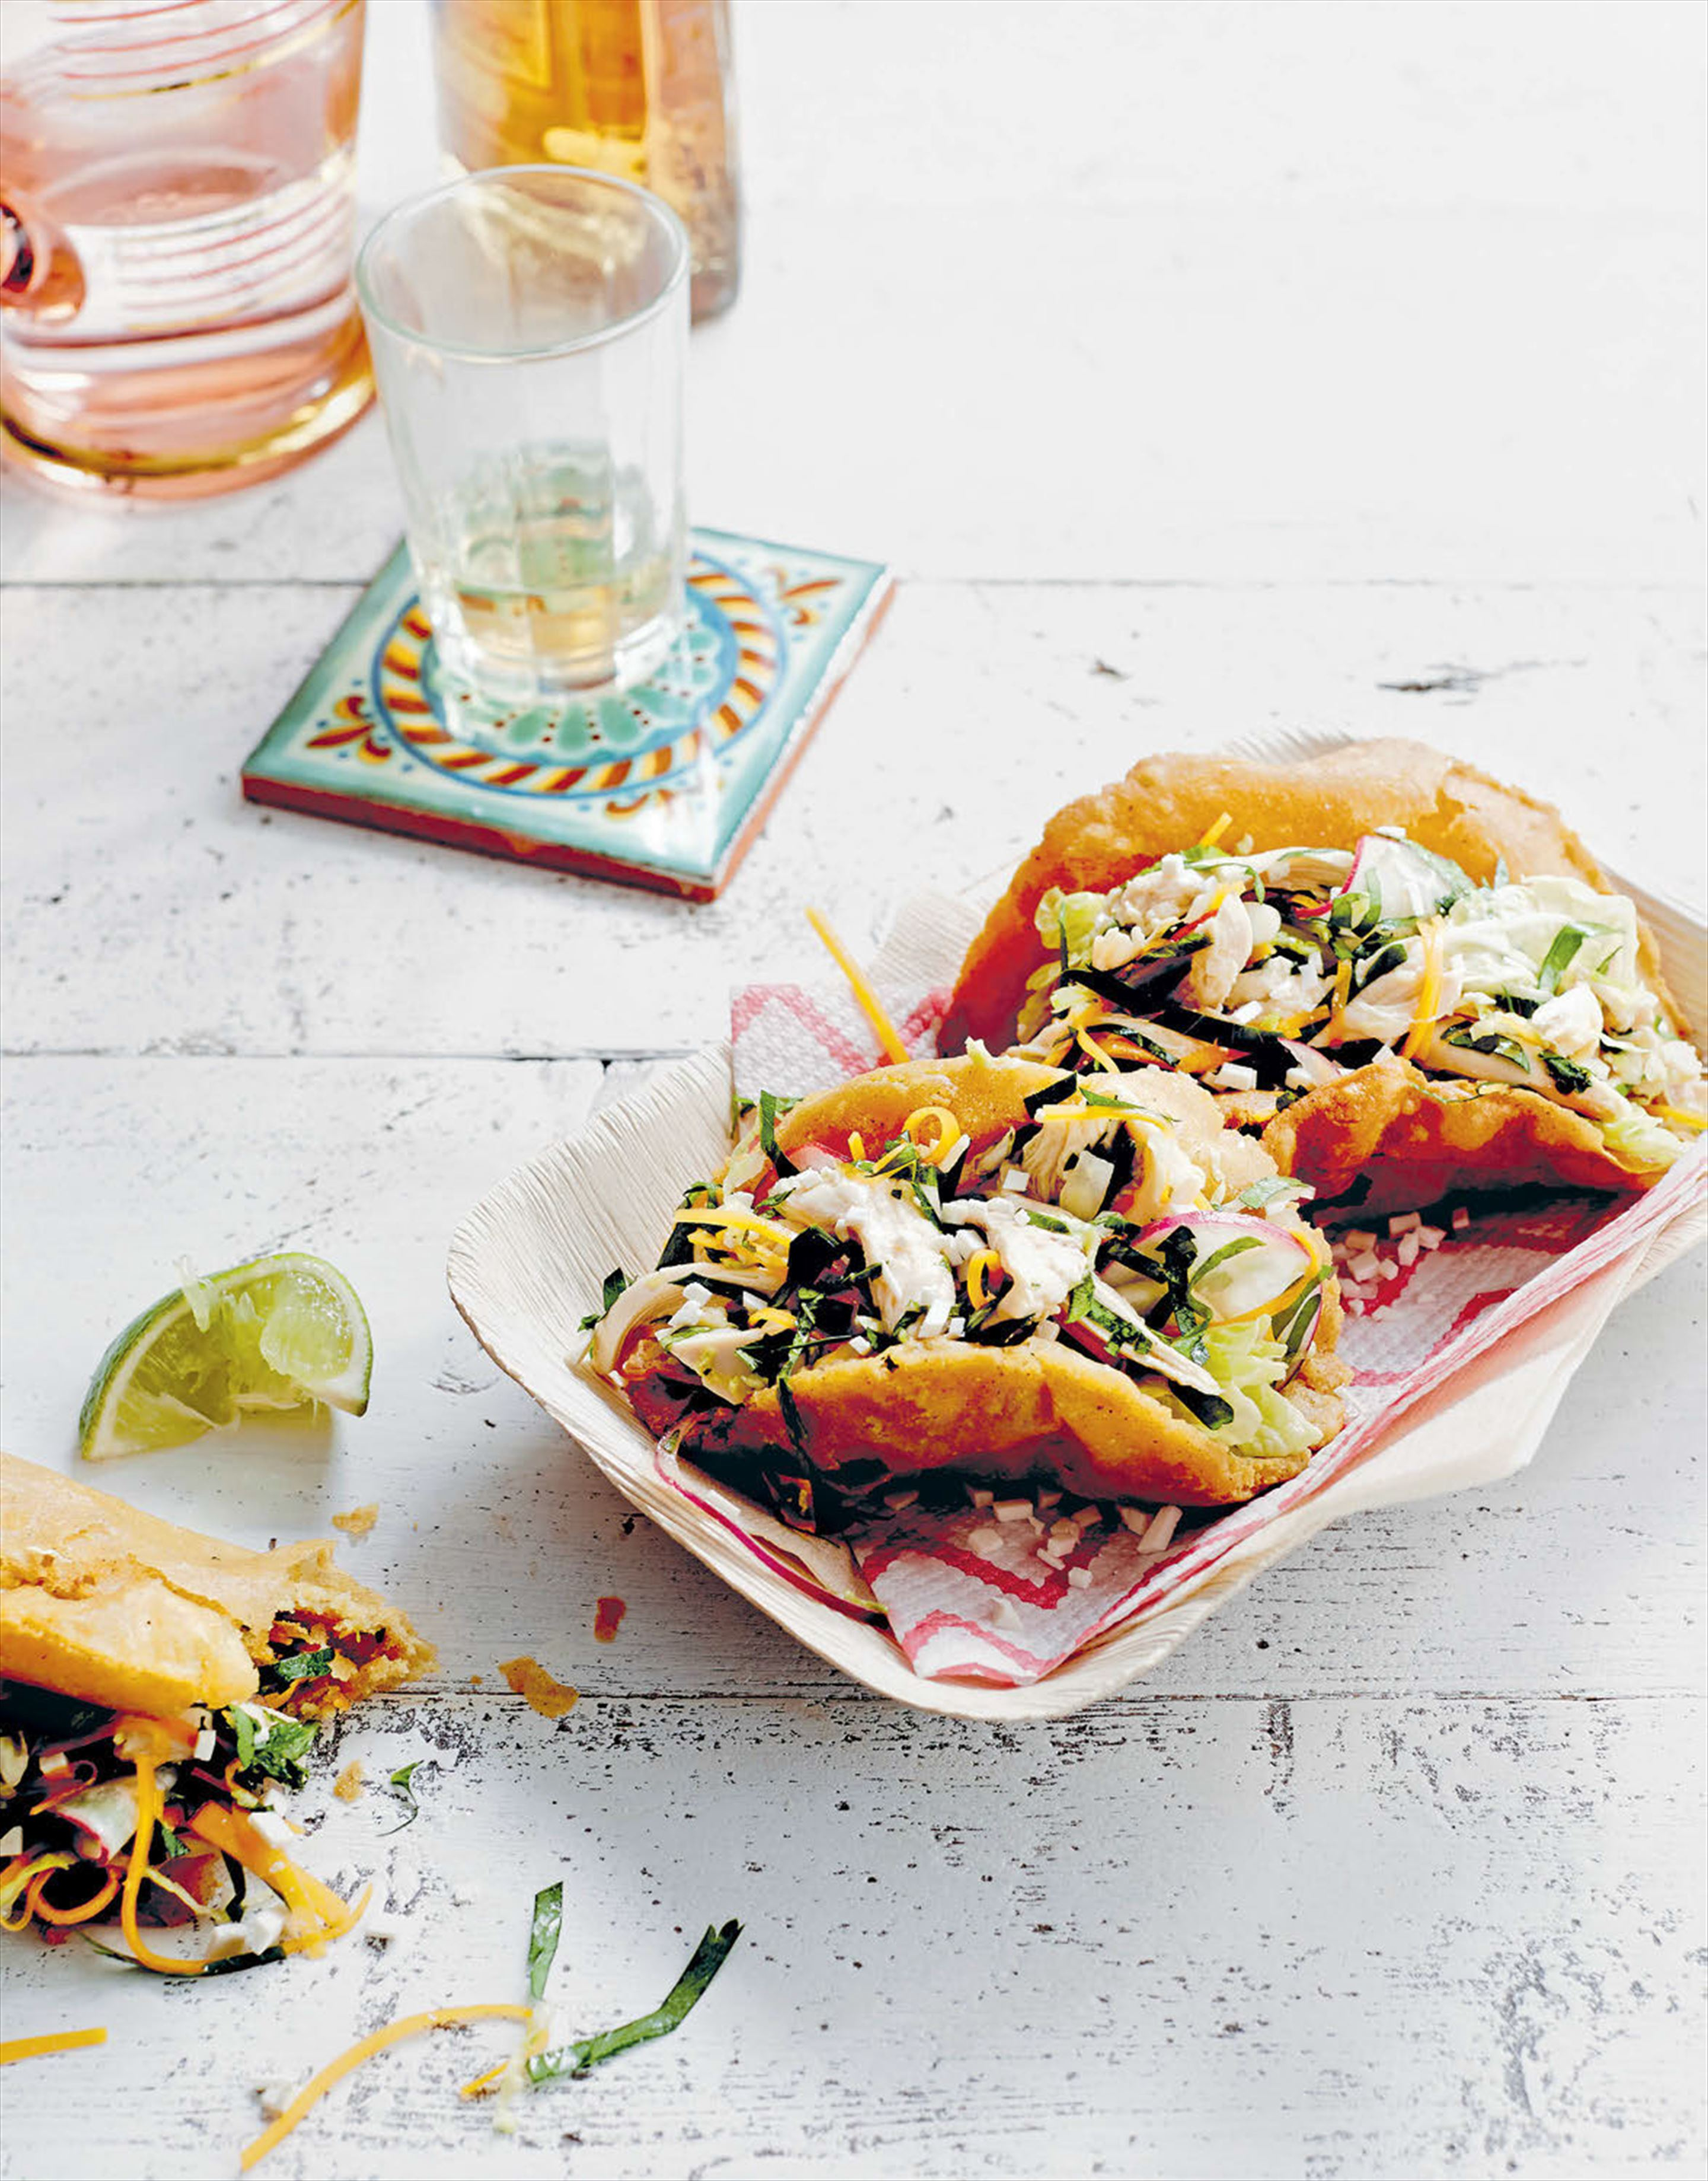 Puffy tacos, napa chicken salad & tomatillo verde